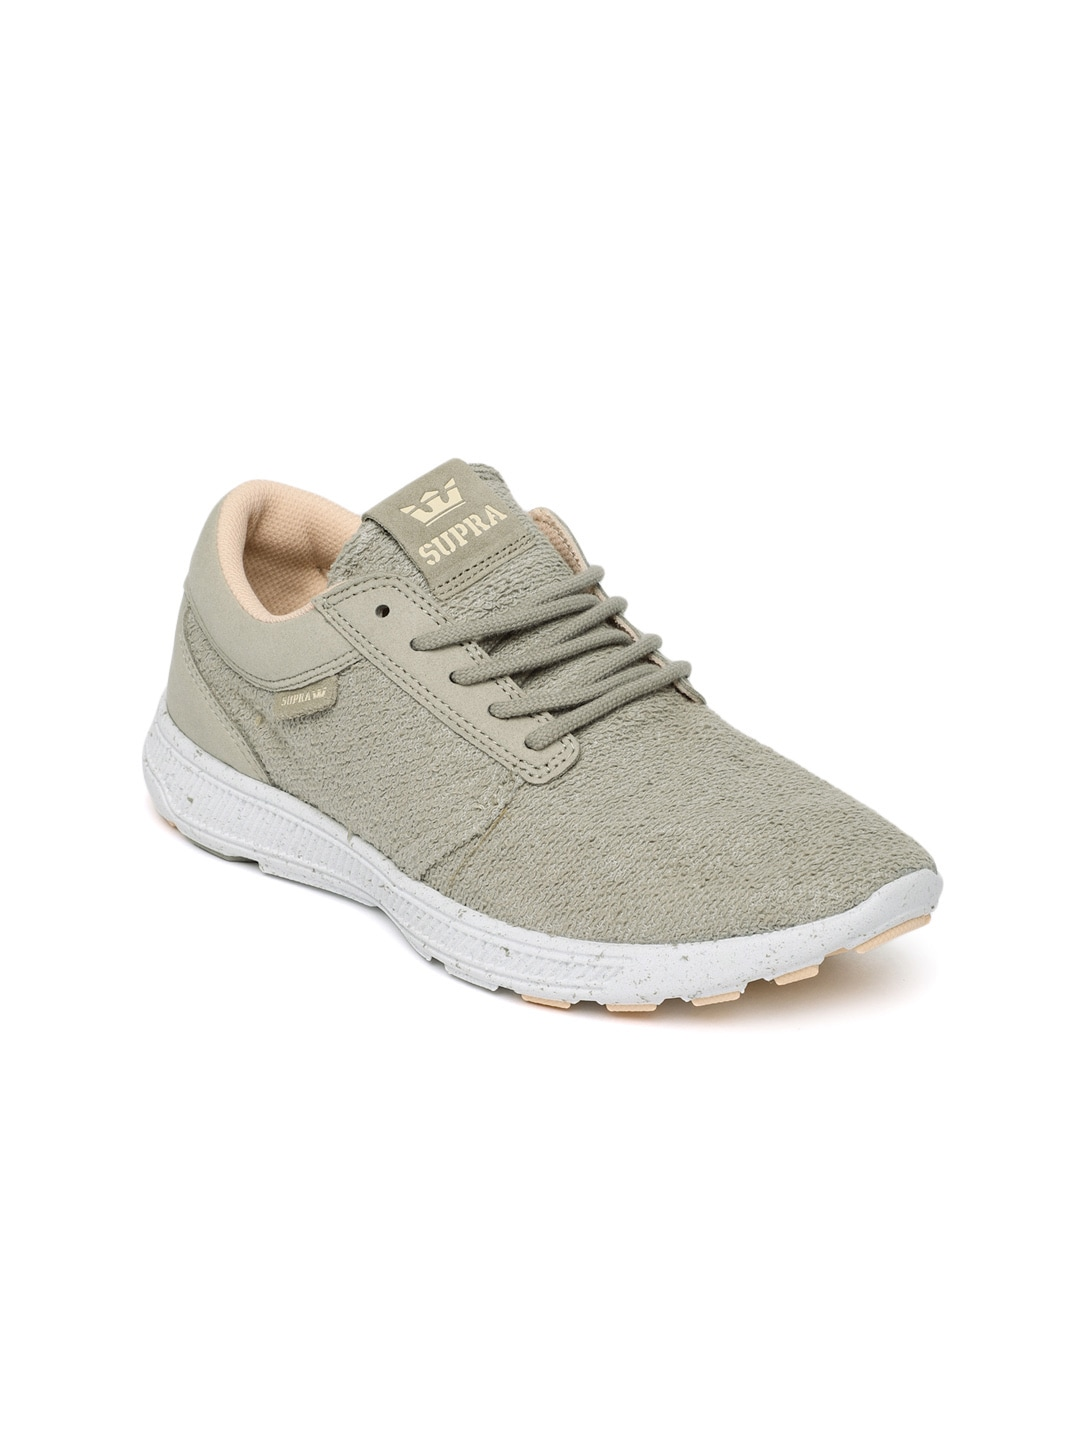 b2c9257a Casual Shoes For Women - Buy Women's Casual Shoes Online from Myntra